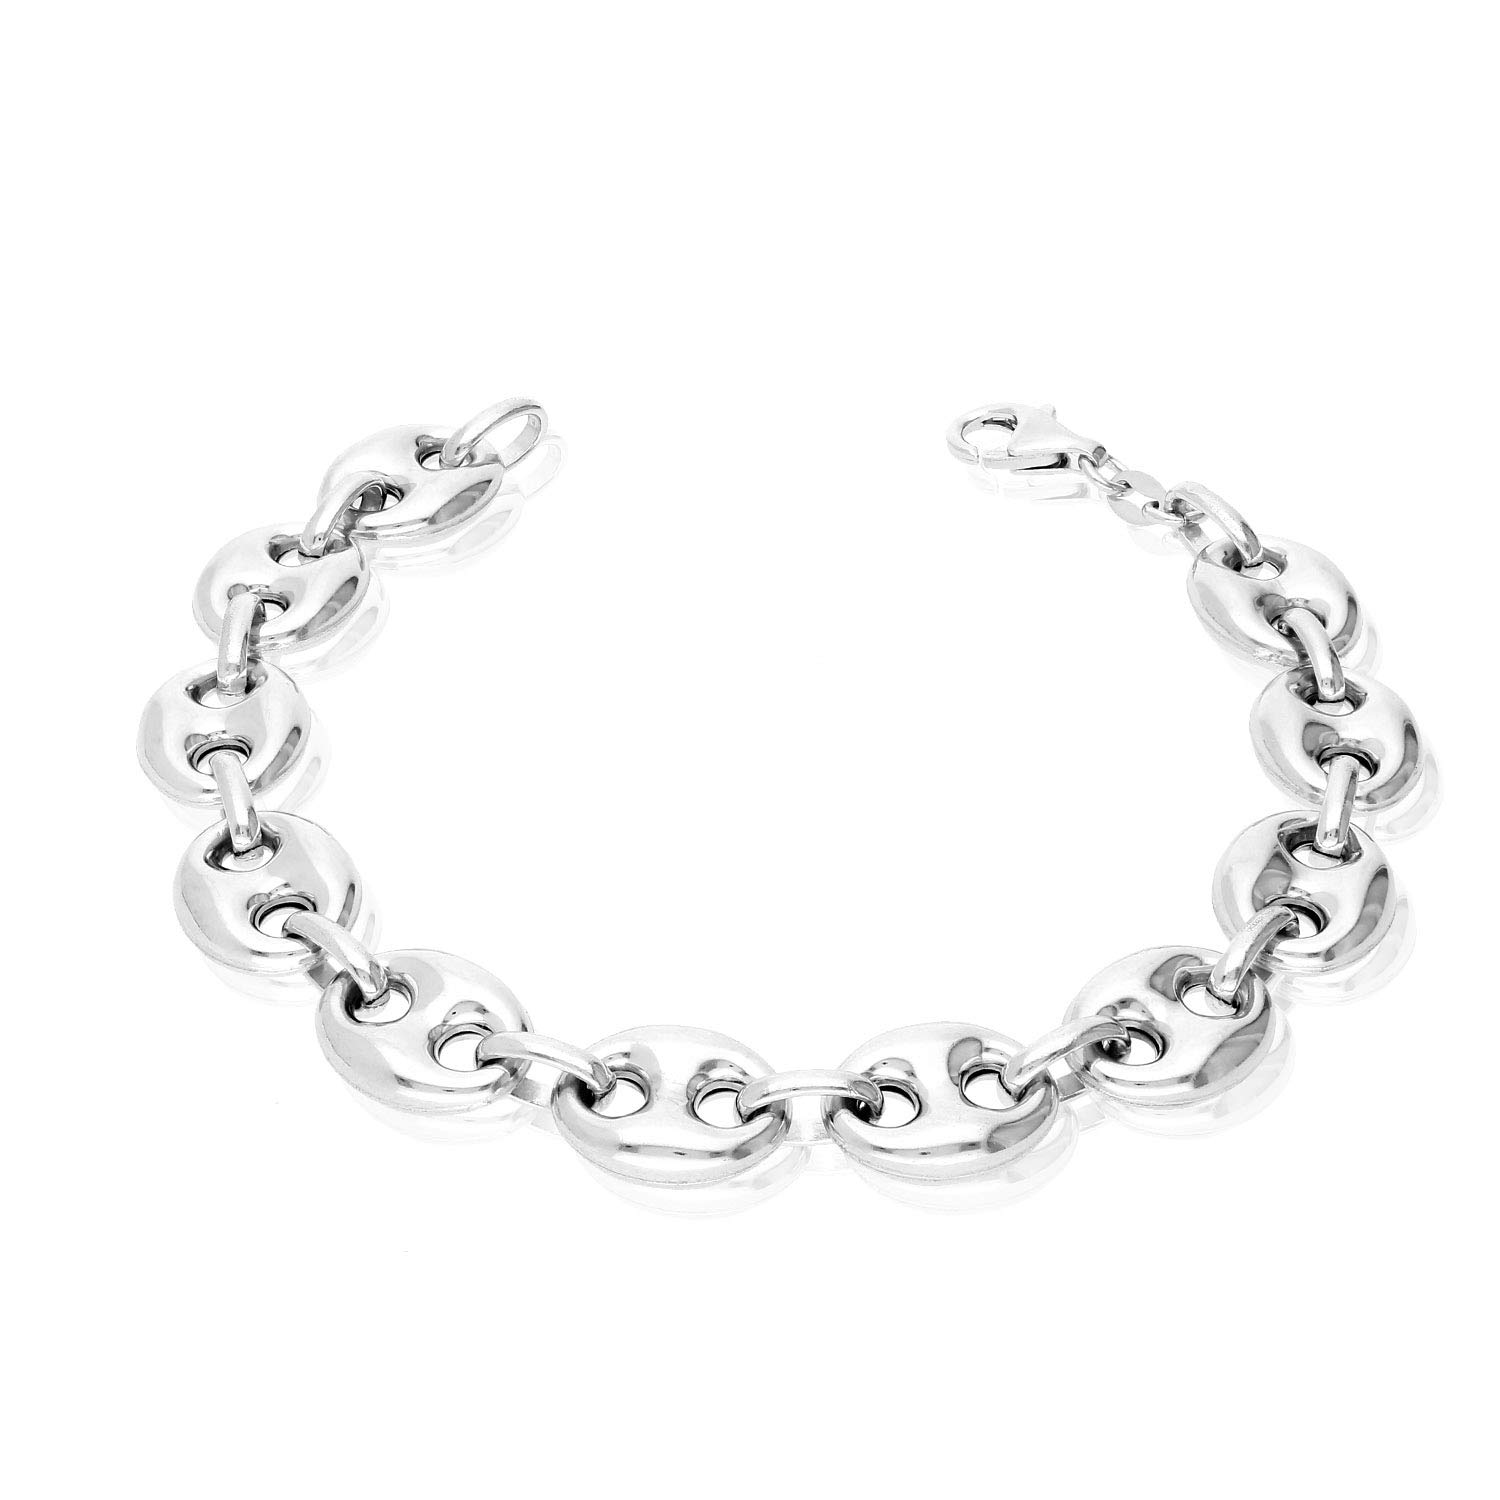 Italy 925 Sterling Silver 12mm Puffed Anchor Mariner Link Chain Bracelet 8.5'' by WJD Exclusives (Image #4)